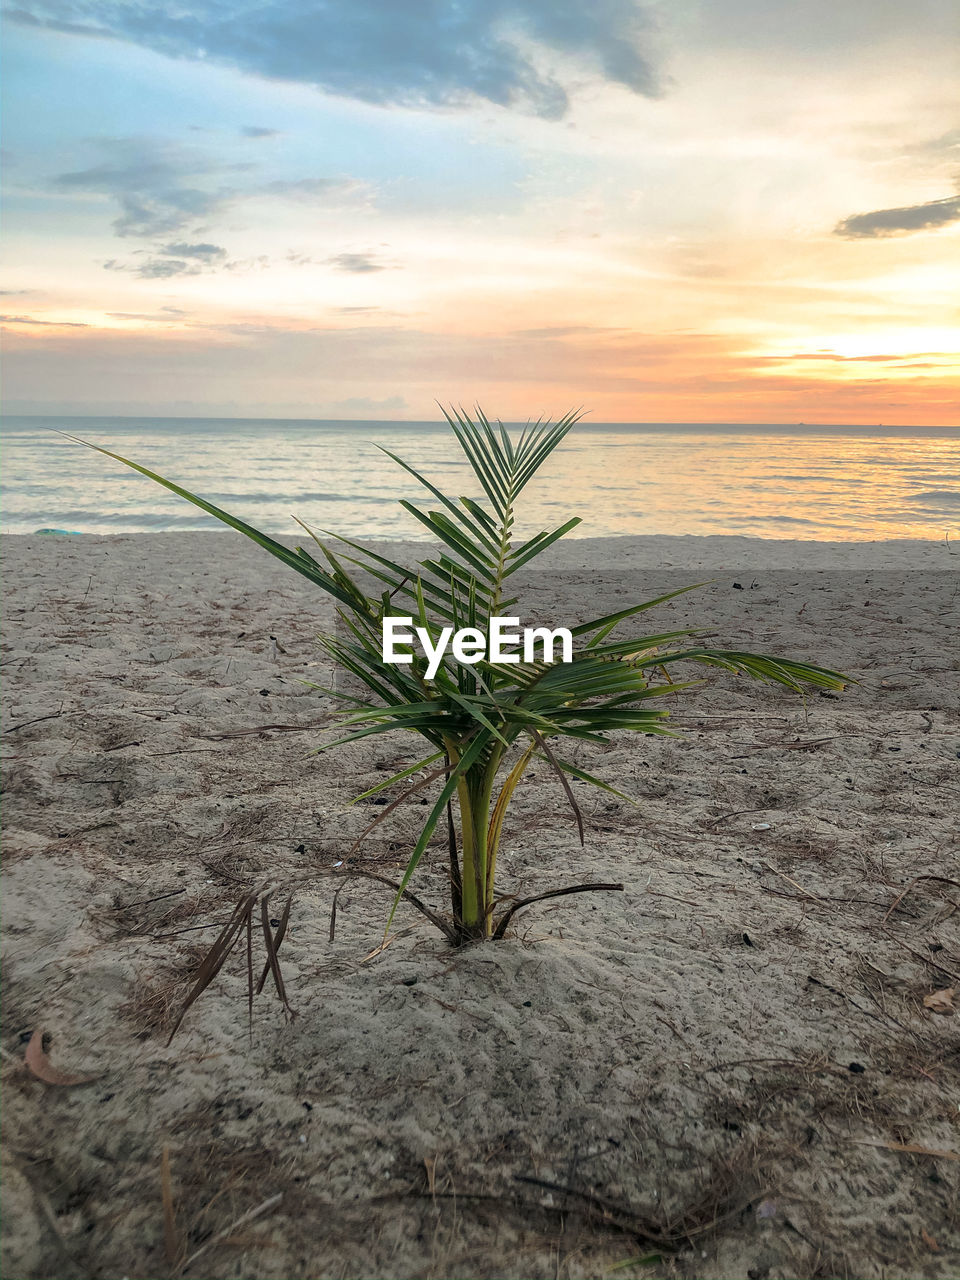 PLANT ON BEACH AGAINST SKY DURING SUNSET